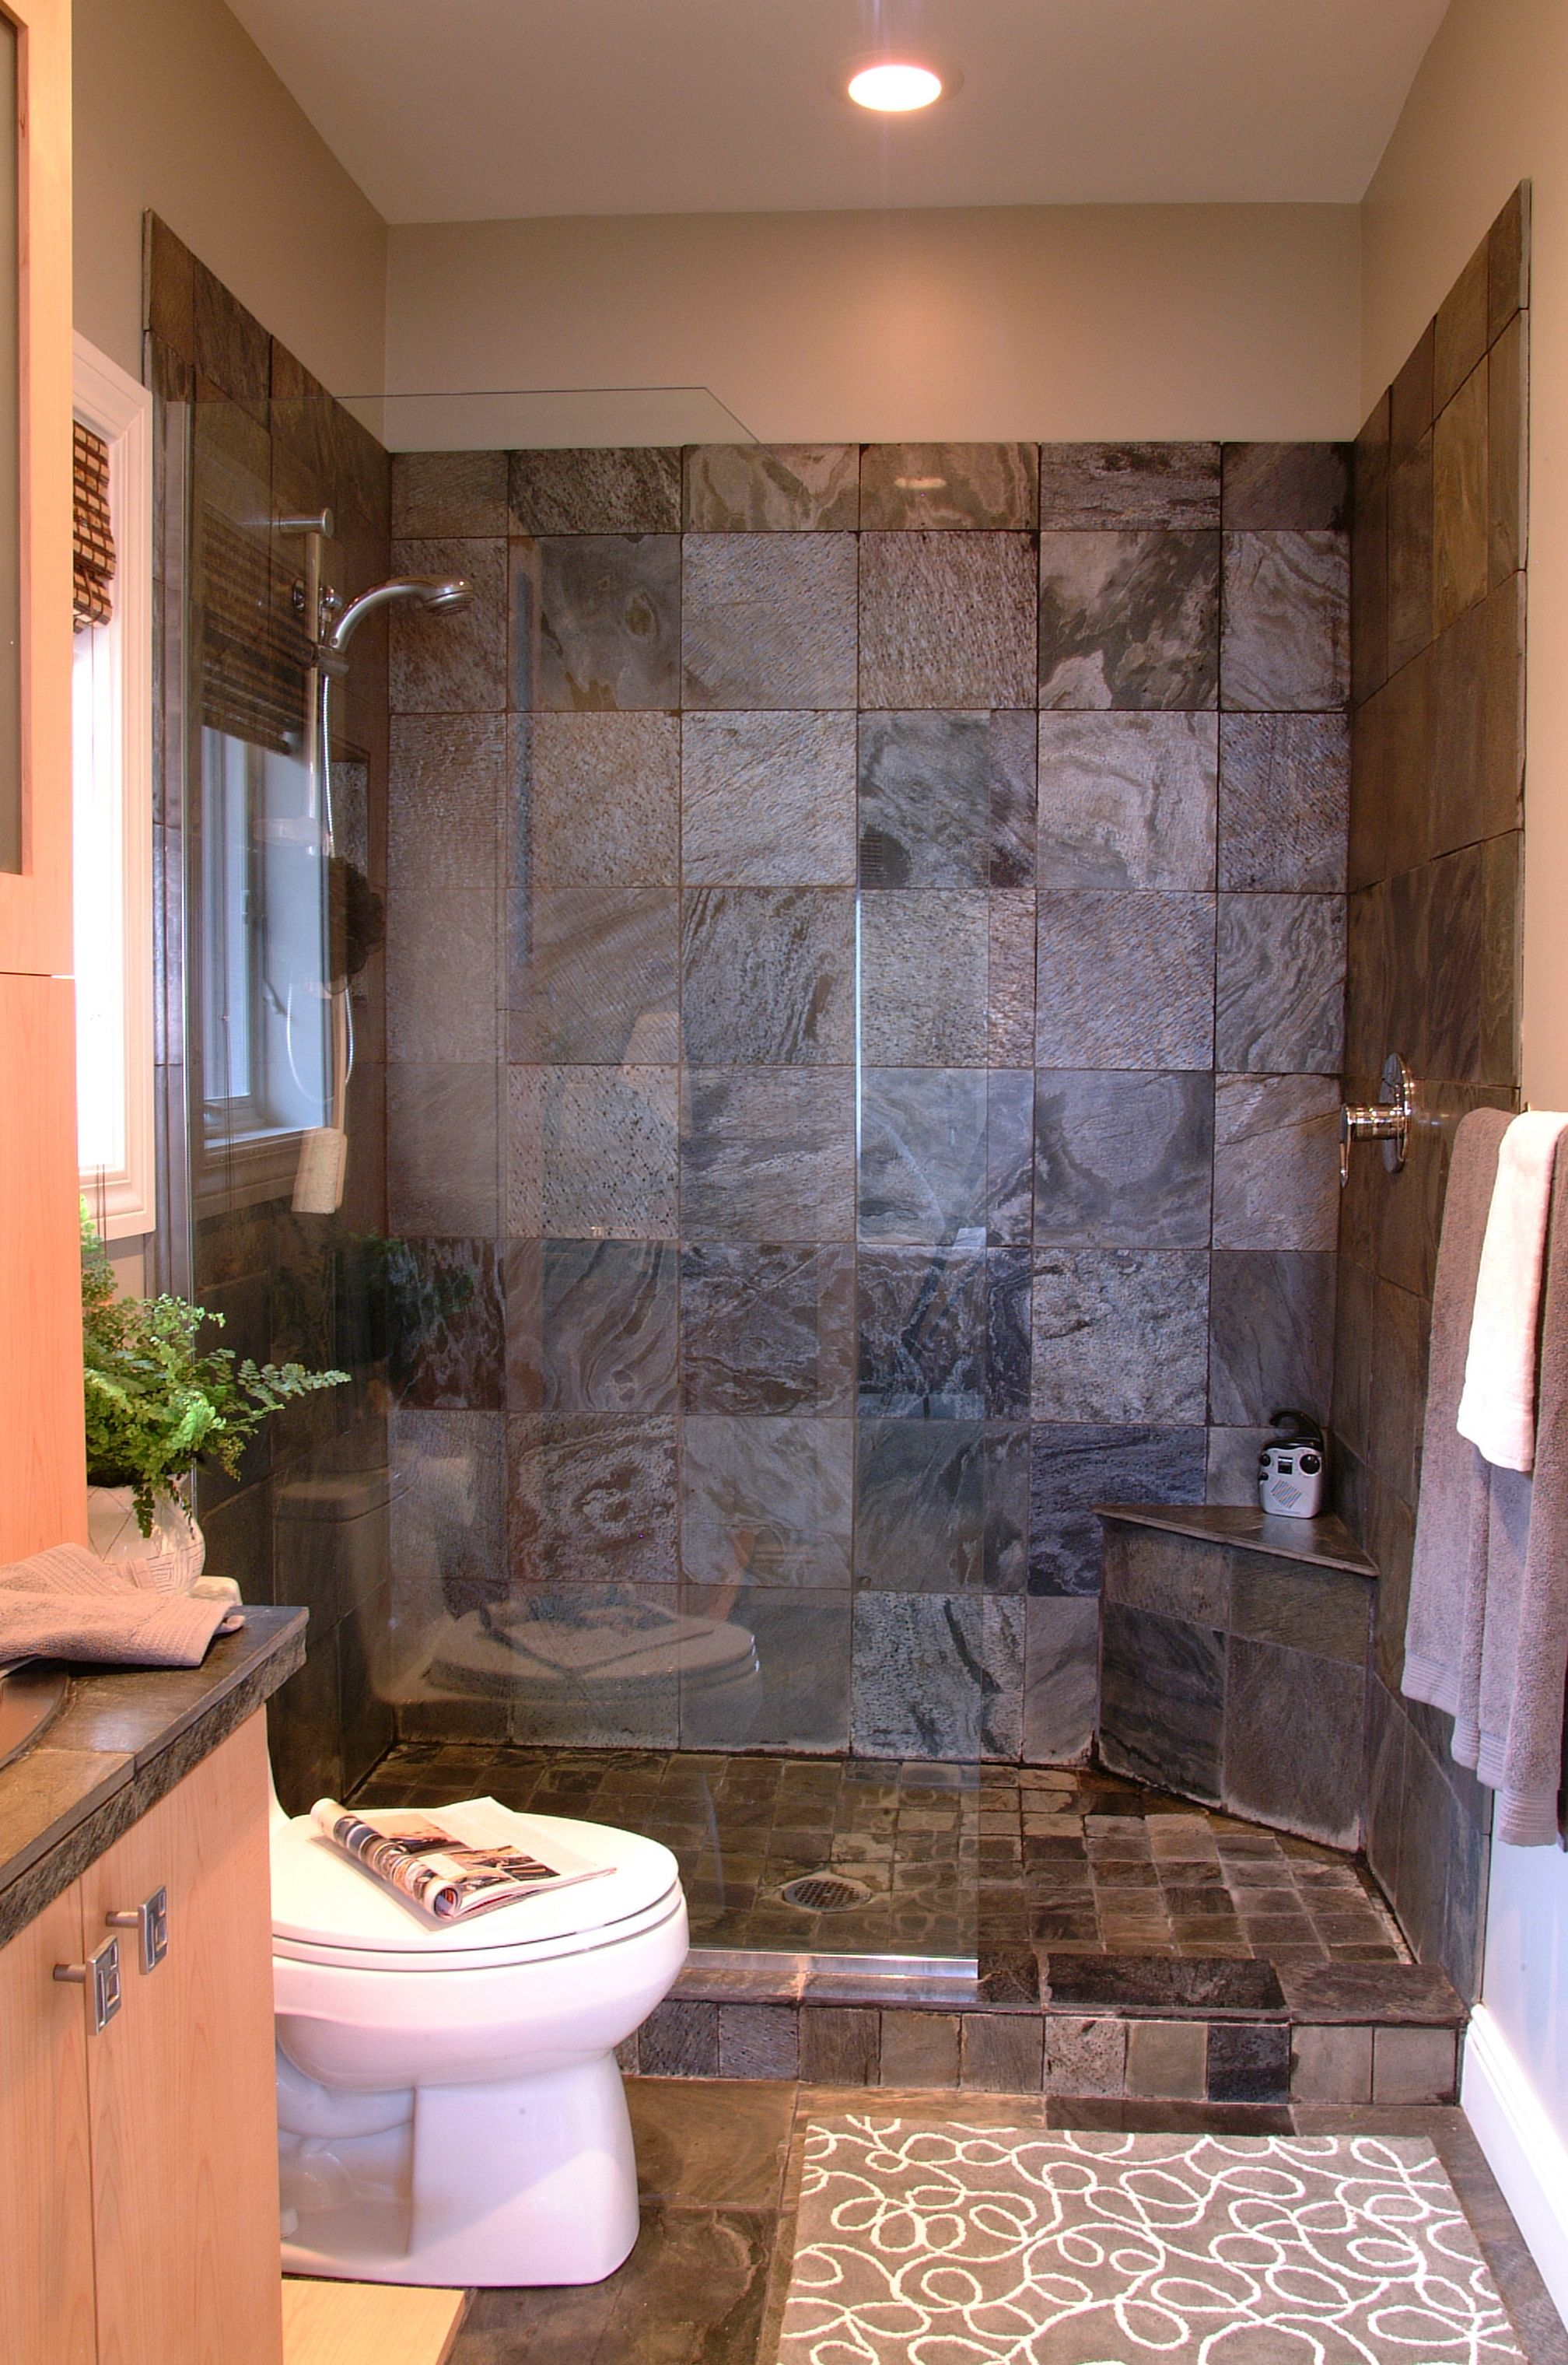 Small Bathroom Remodel Ideas 20 small bathroom design ideas 20 photos Modern Bathroom Design Ideas With Walk In Shower